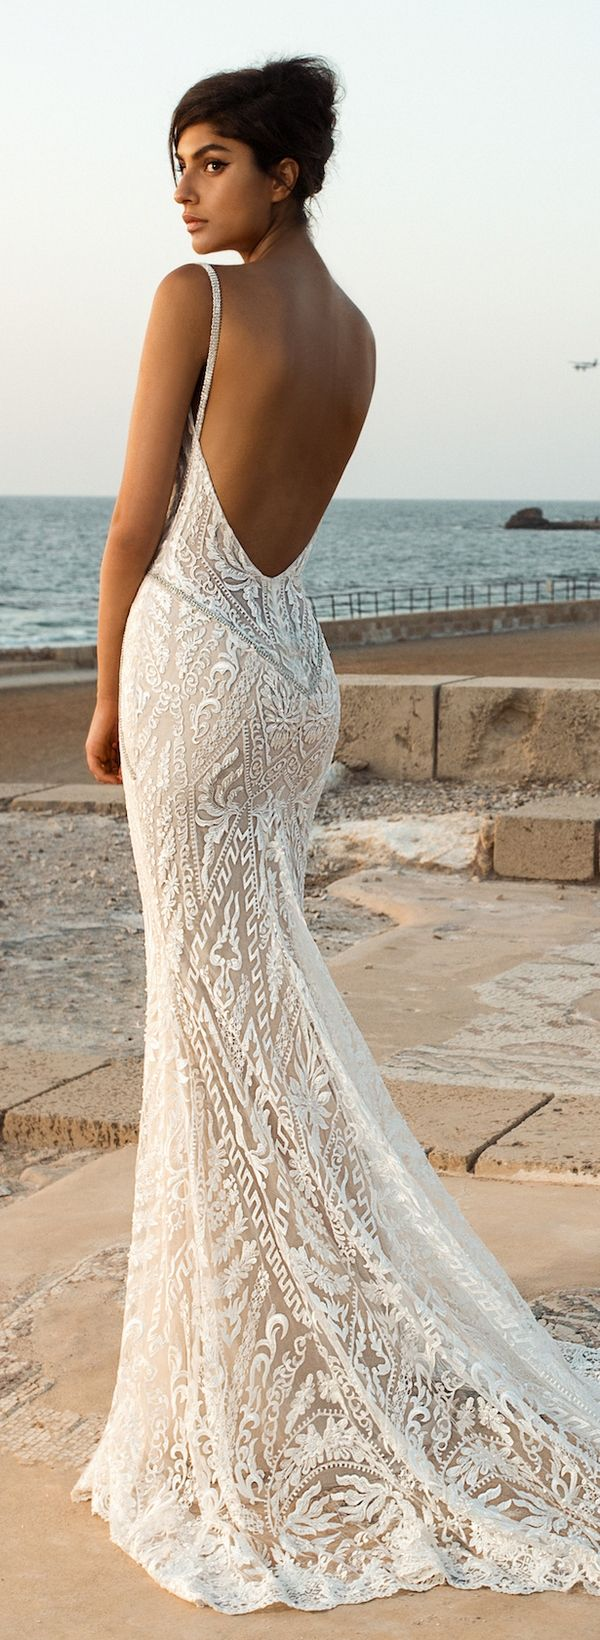 Outdoor summer wedding dresses   best dream wed images on Pinterest  Bridal Engagements and